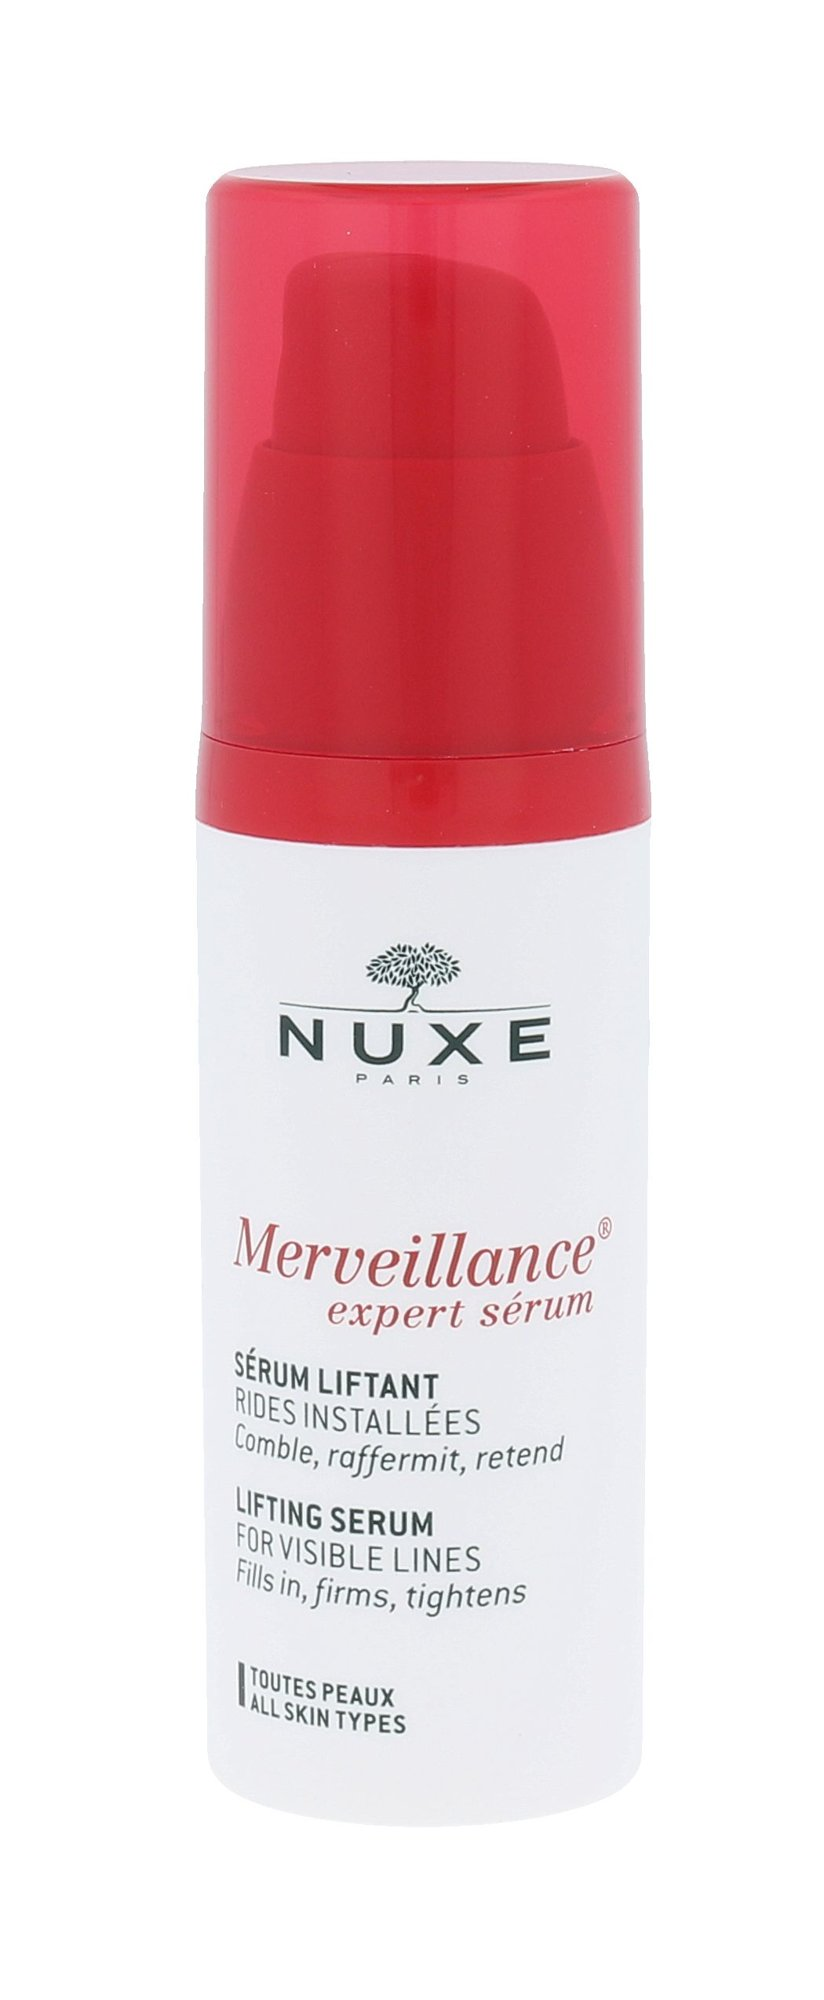 NUXE Merveillance Cosmetic 30ml  Lifting Serum For Visible Lines